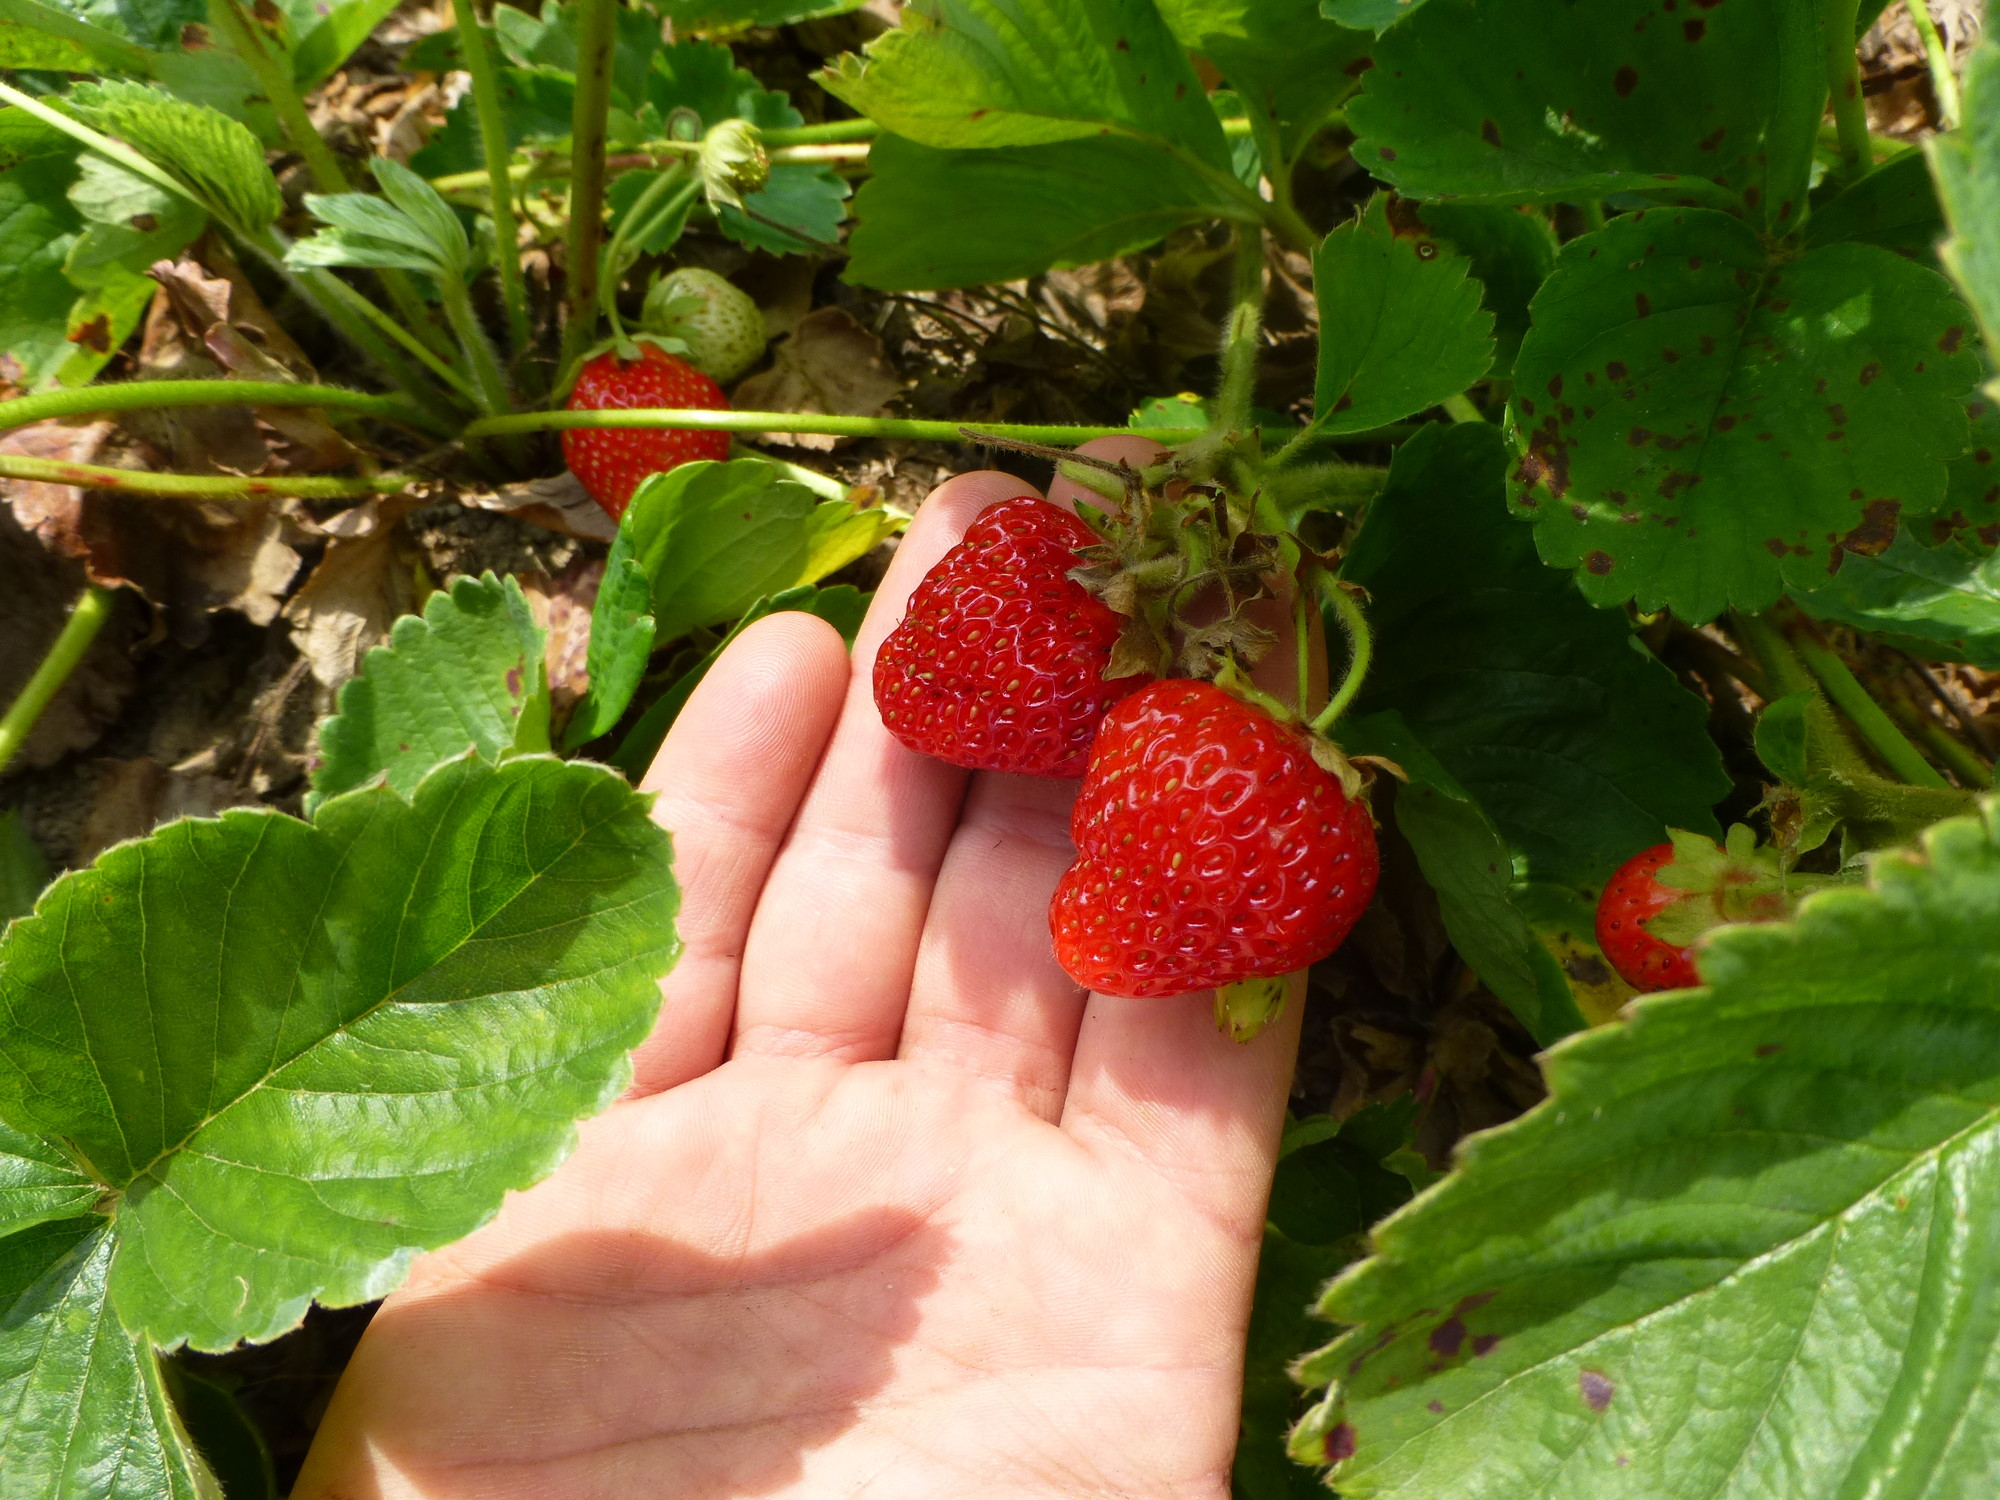 The organic strawberries have been popular this season.